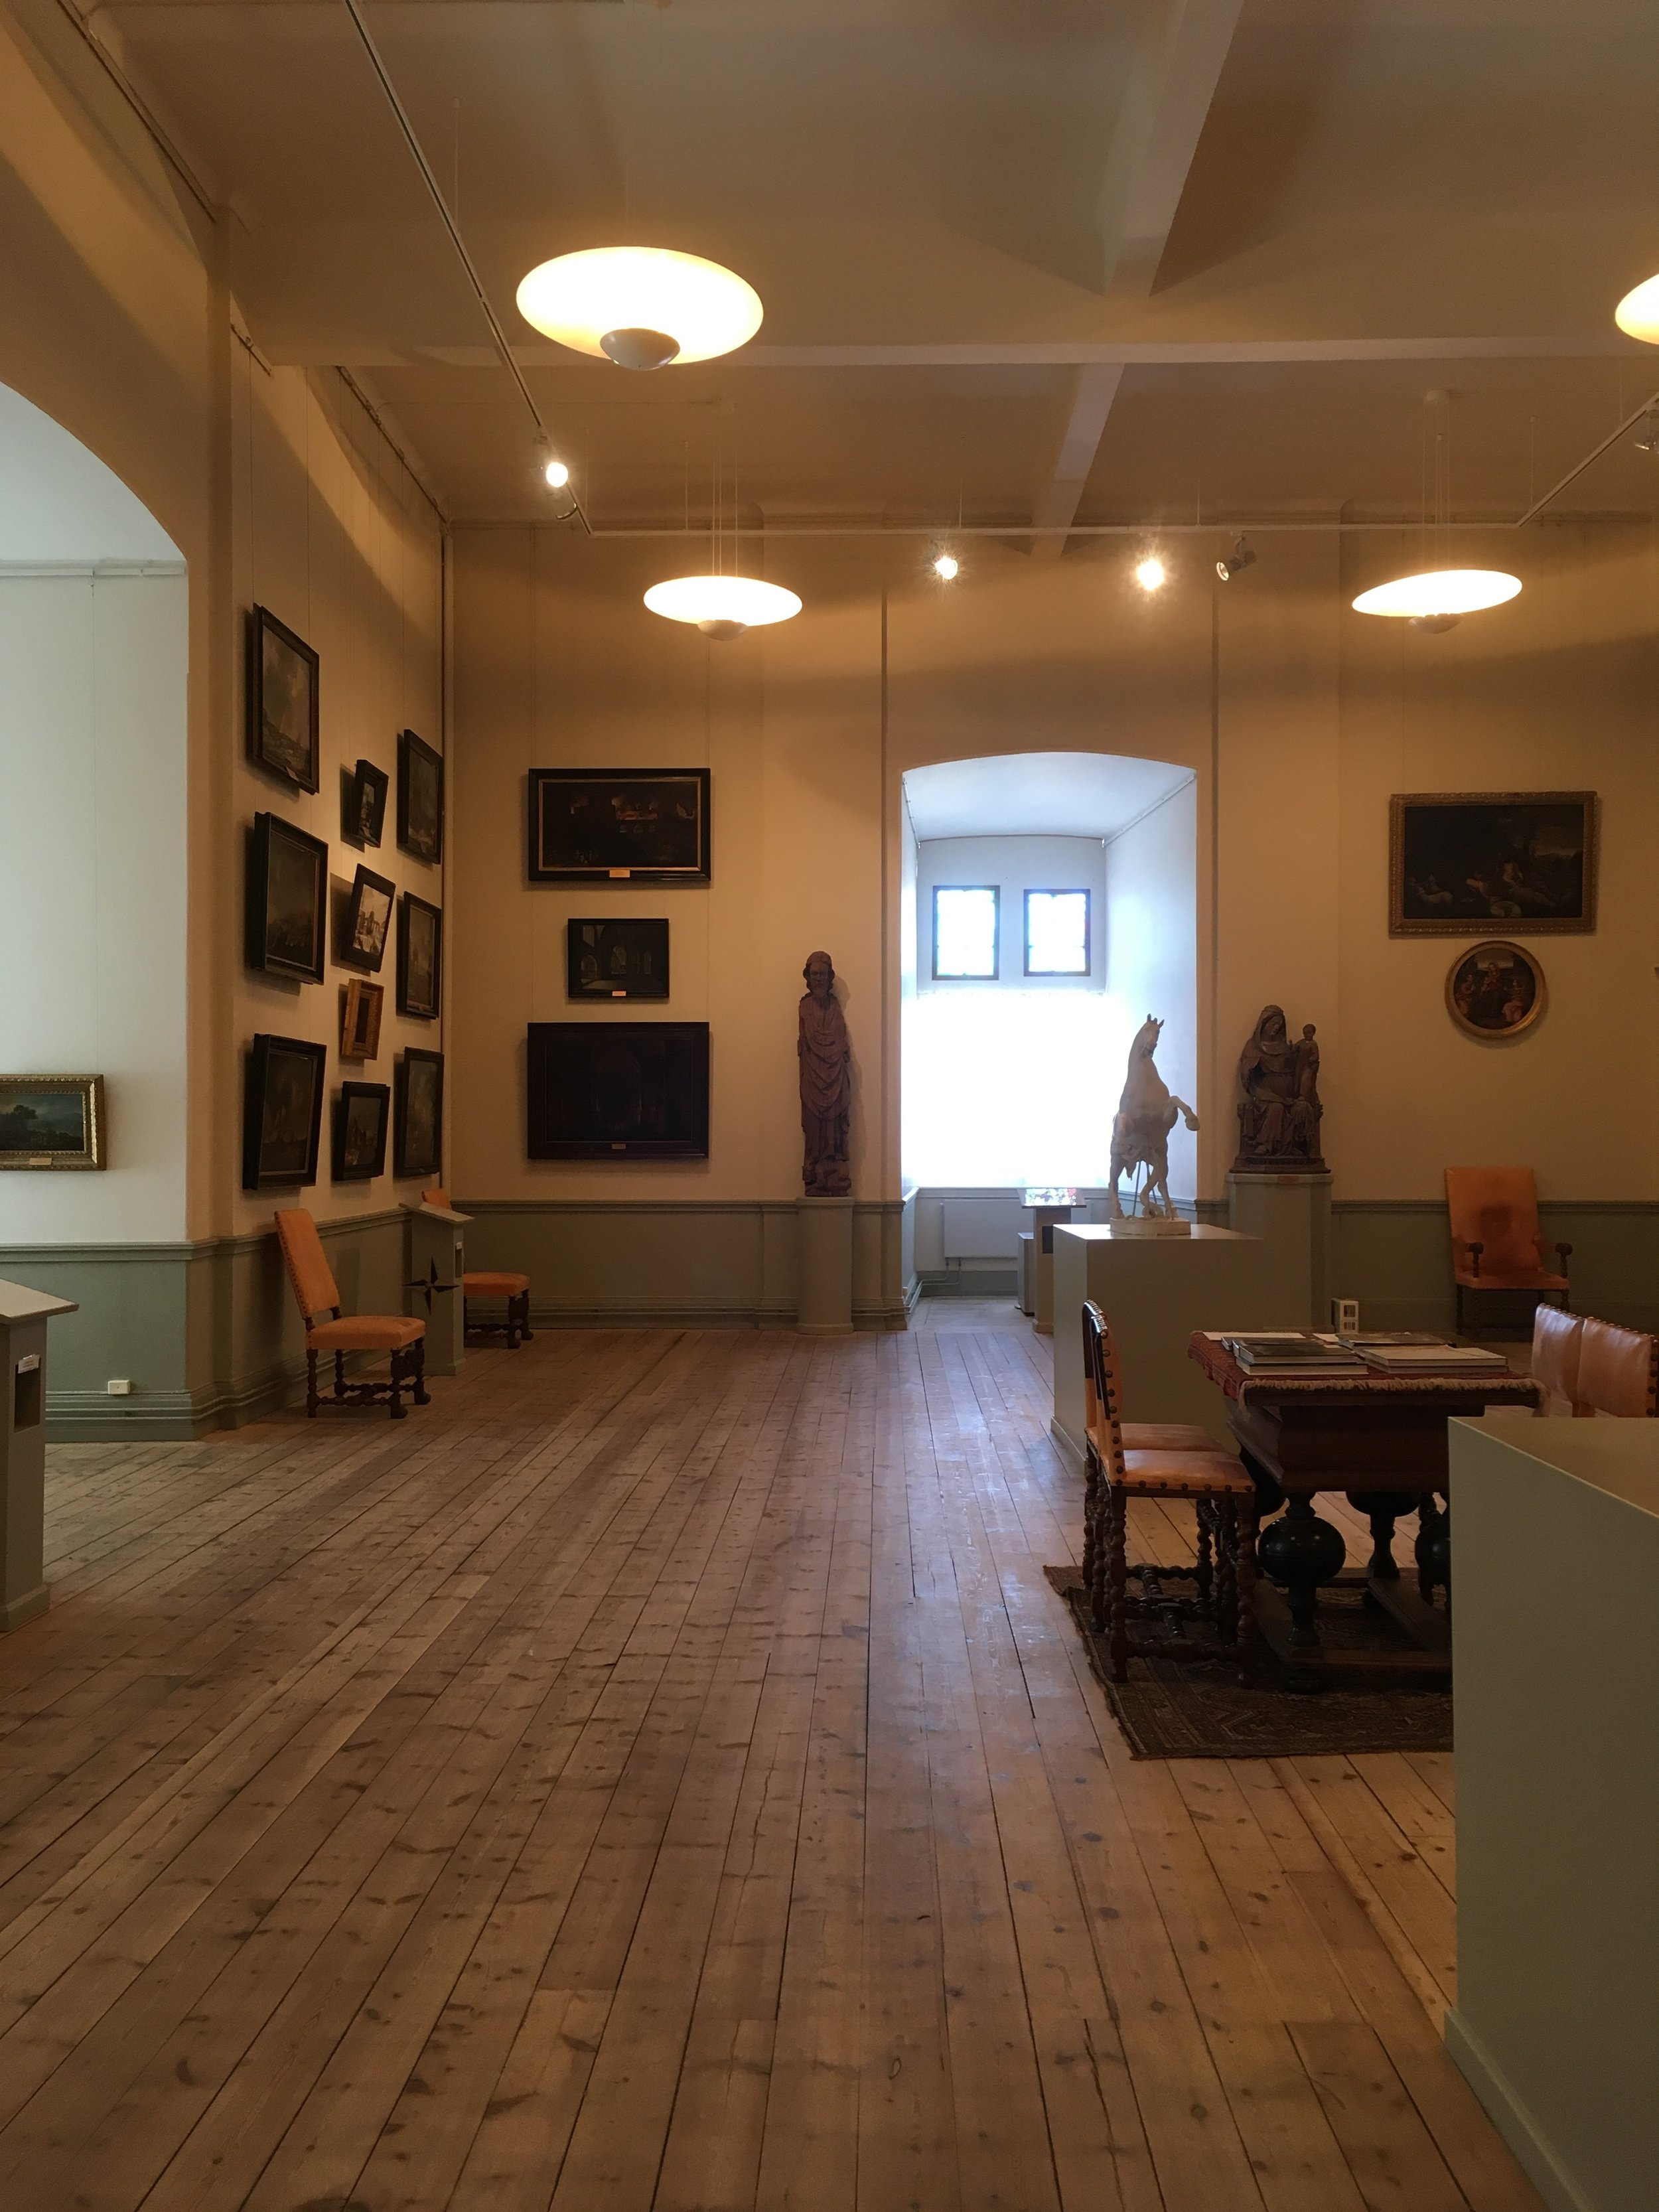 Art collection on the walls